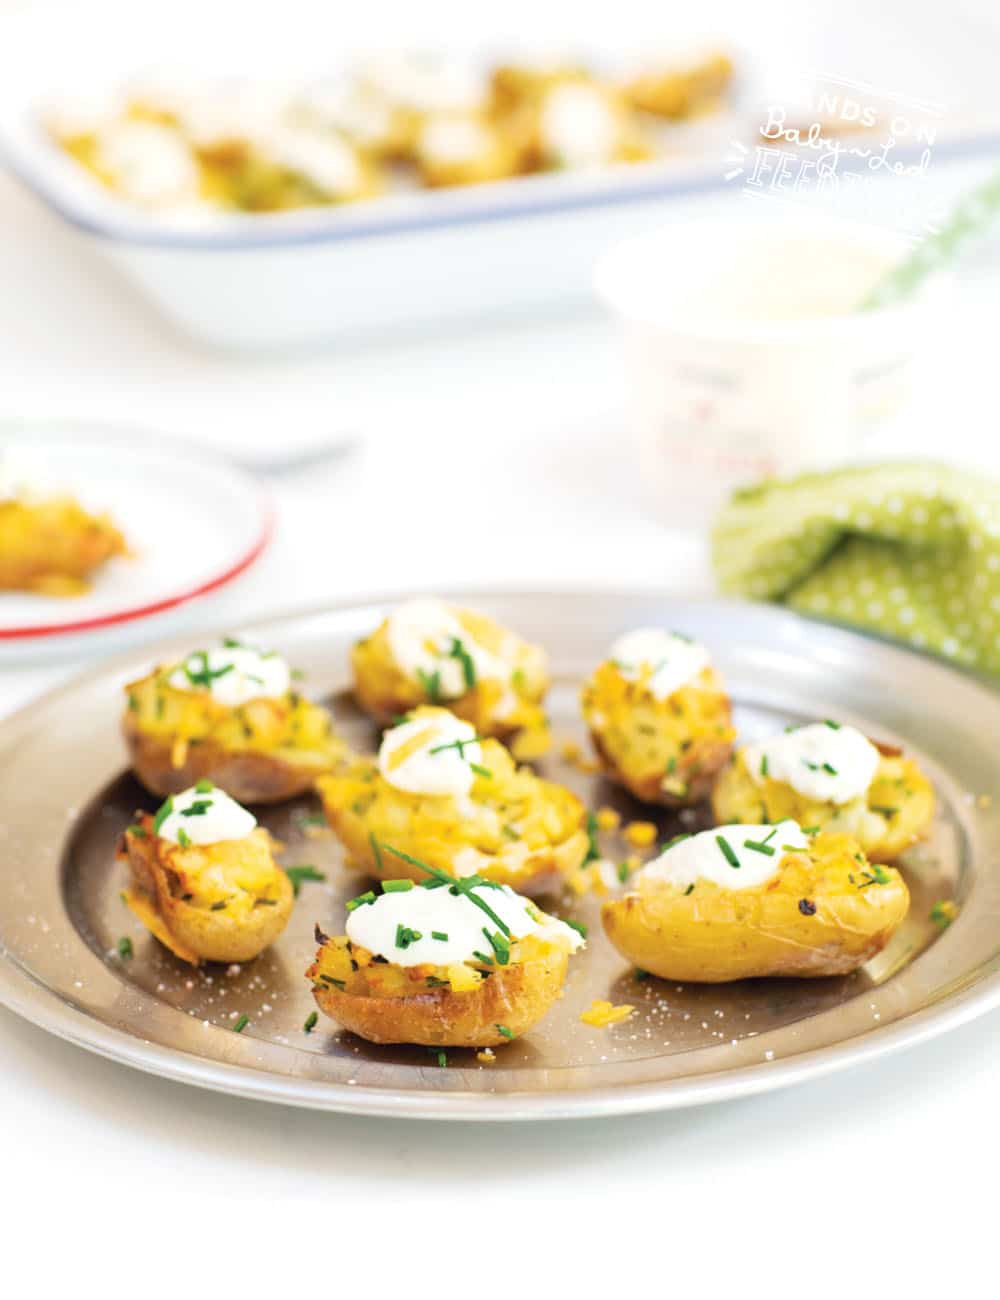 Baby-Led-Feeding-Stuffed-Irish-Potatoes-Recipe-Images